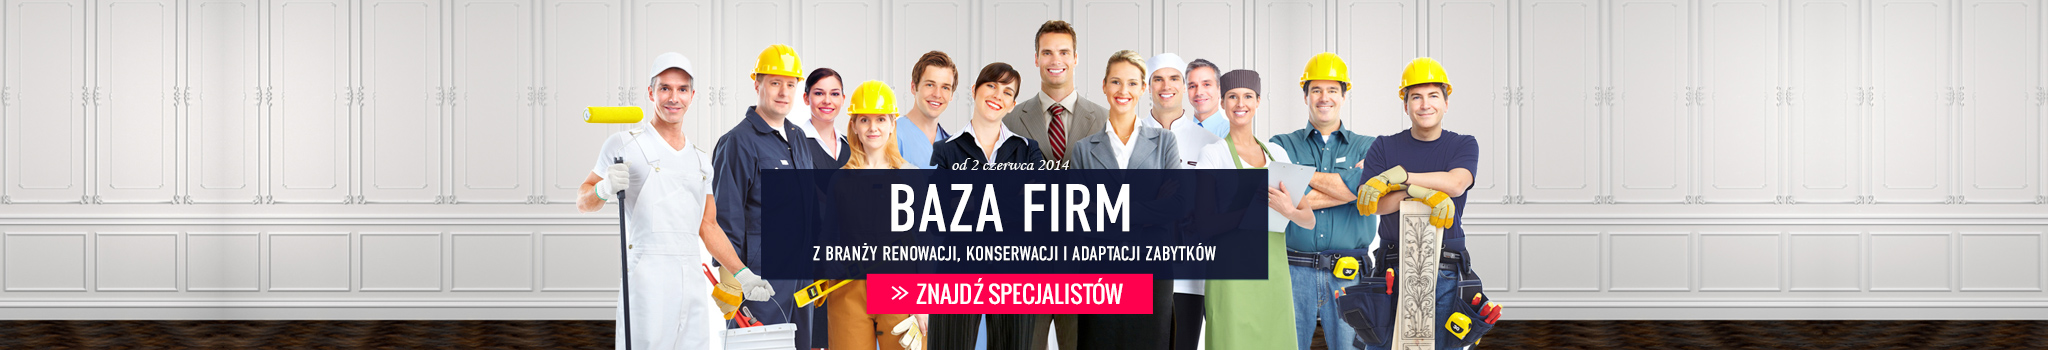 slajder-baza-firm_start2